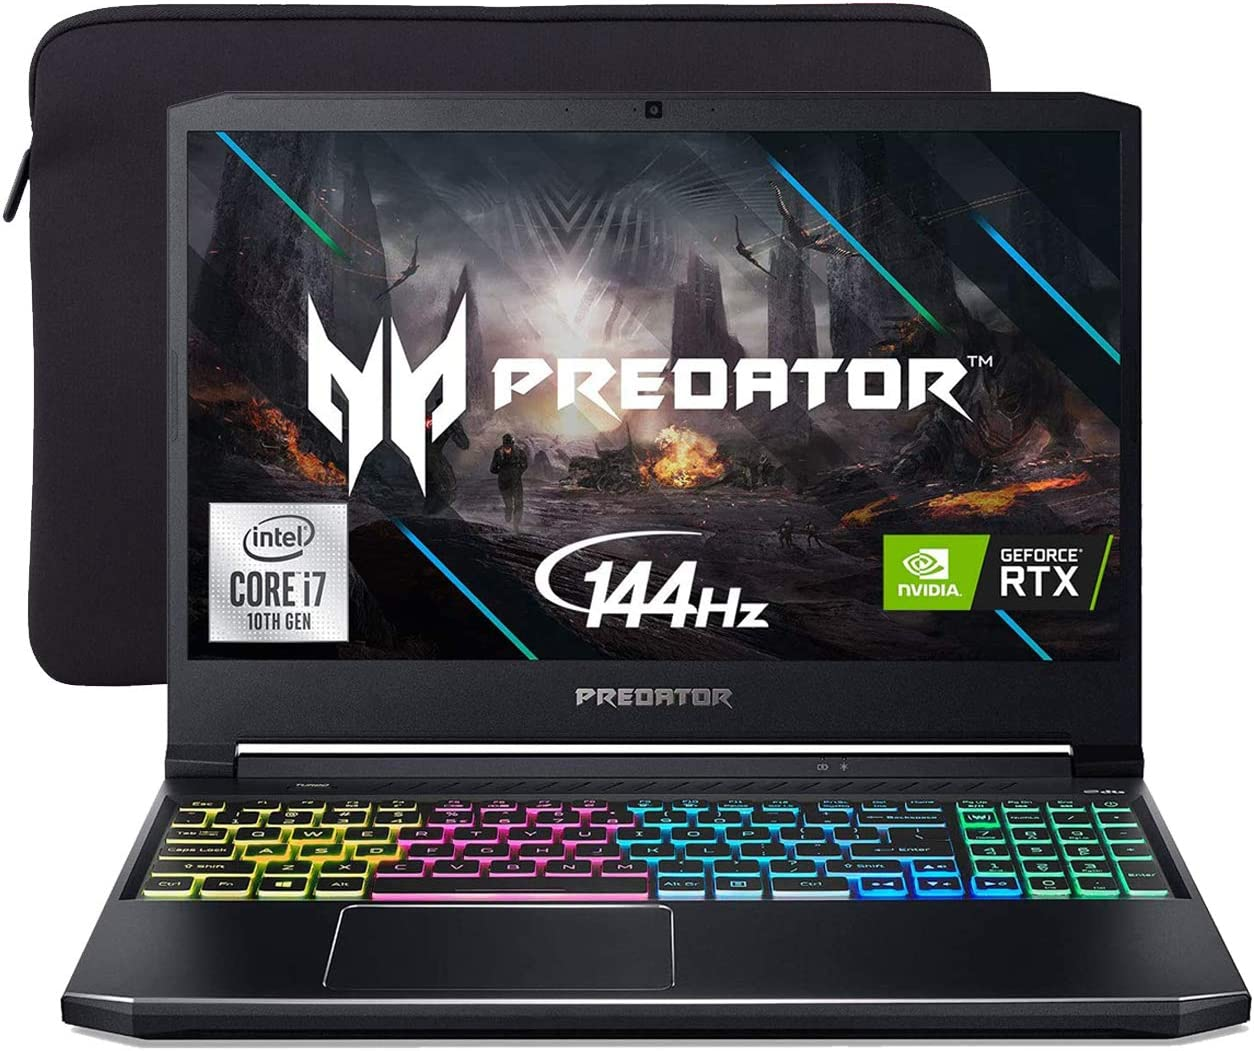 "Acer Predator Helios 300 144Hz Gaming Laptop, 15.6"" 3ms IPS FHD, RTX 2060 OC, i7-10750H 6-Cores up to 5.00 GHz, 32GB RAM, 1TB SSD+2TB SSHD, Killer Network, RGB KB, Mytrix Sleeve, Win 10"